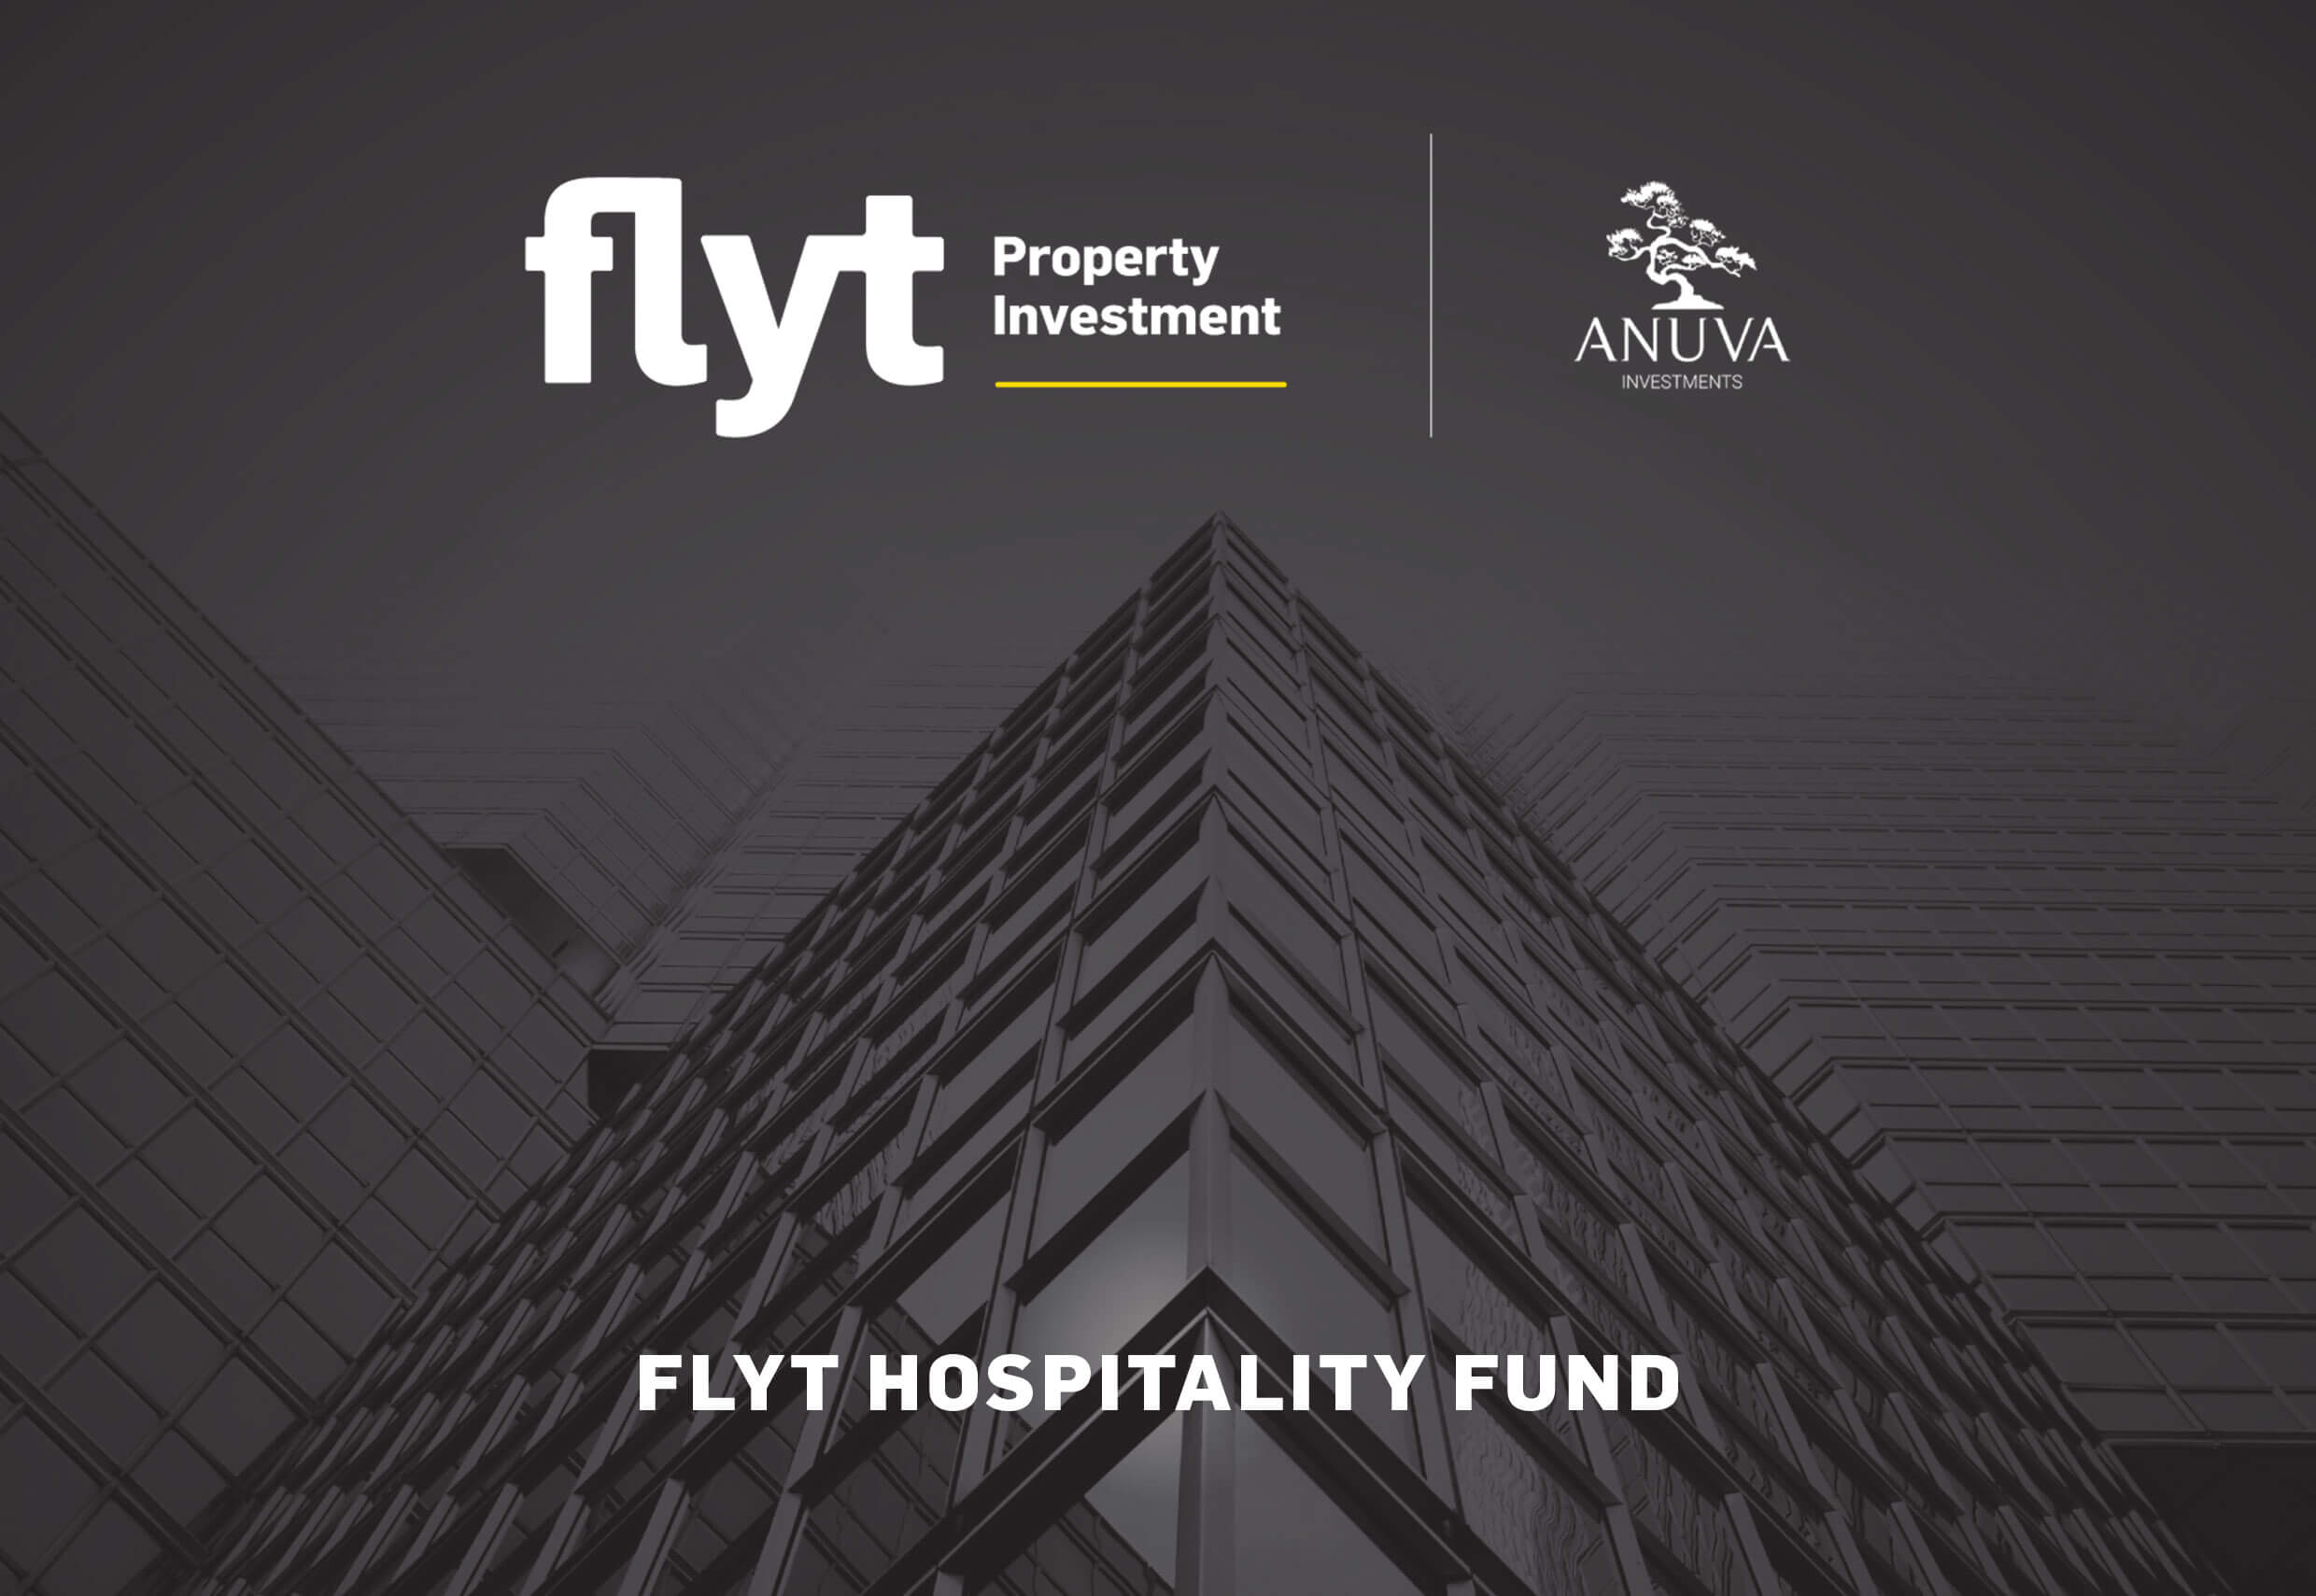 Pages from Anuva Flyt PPM Document REV6 1 1 - Purchasing and managing an investment property – a few fundamentals